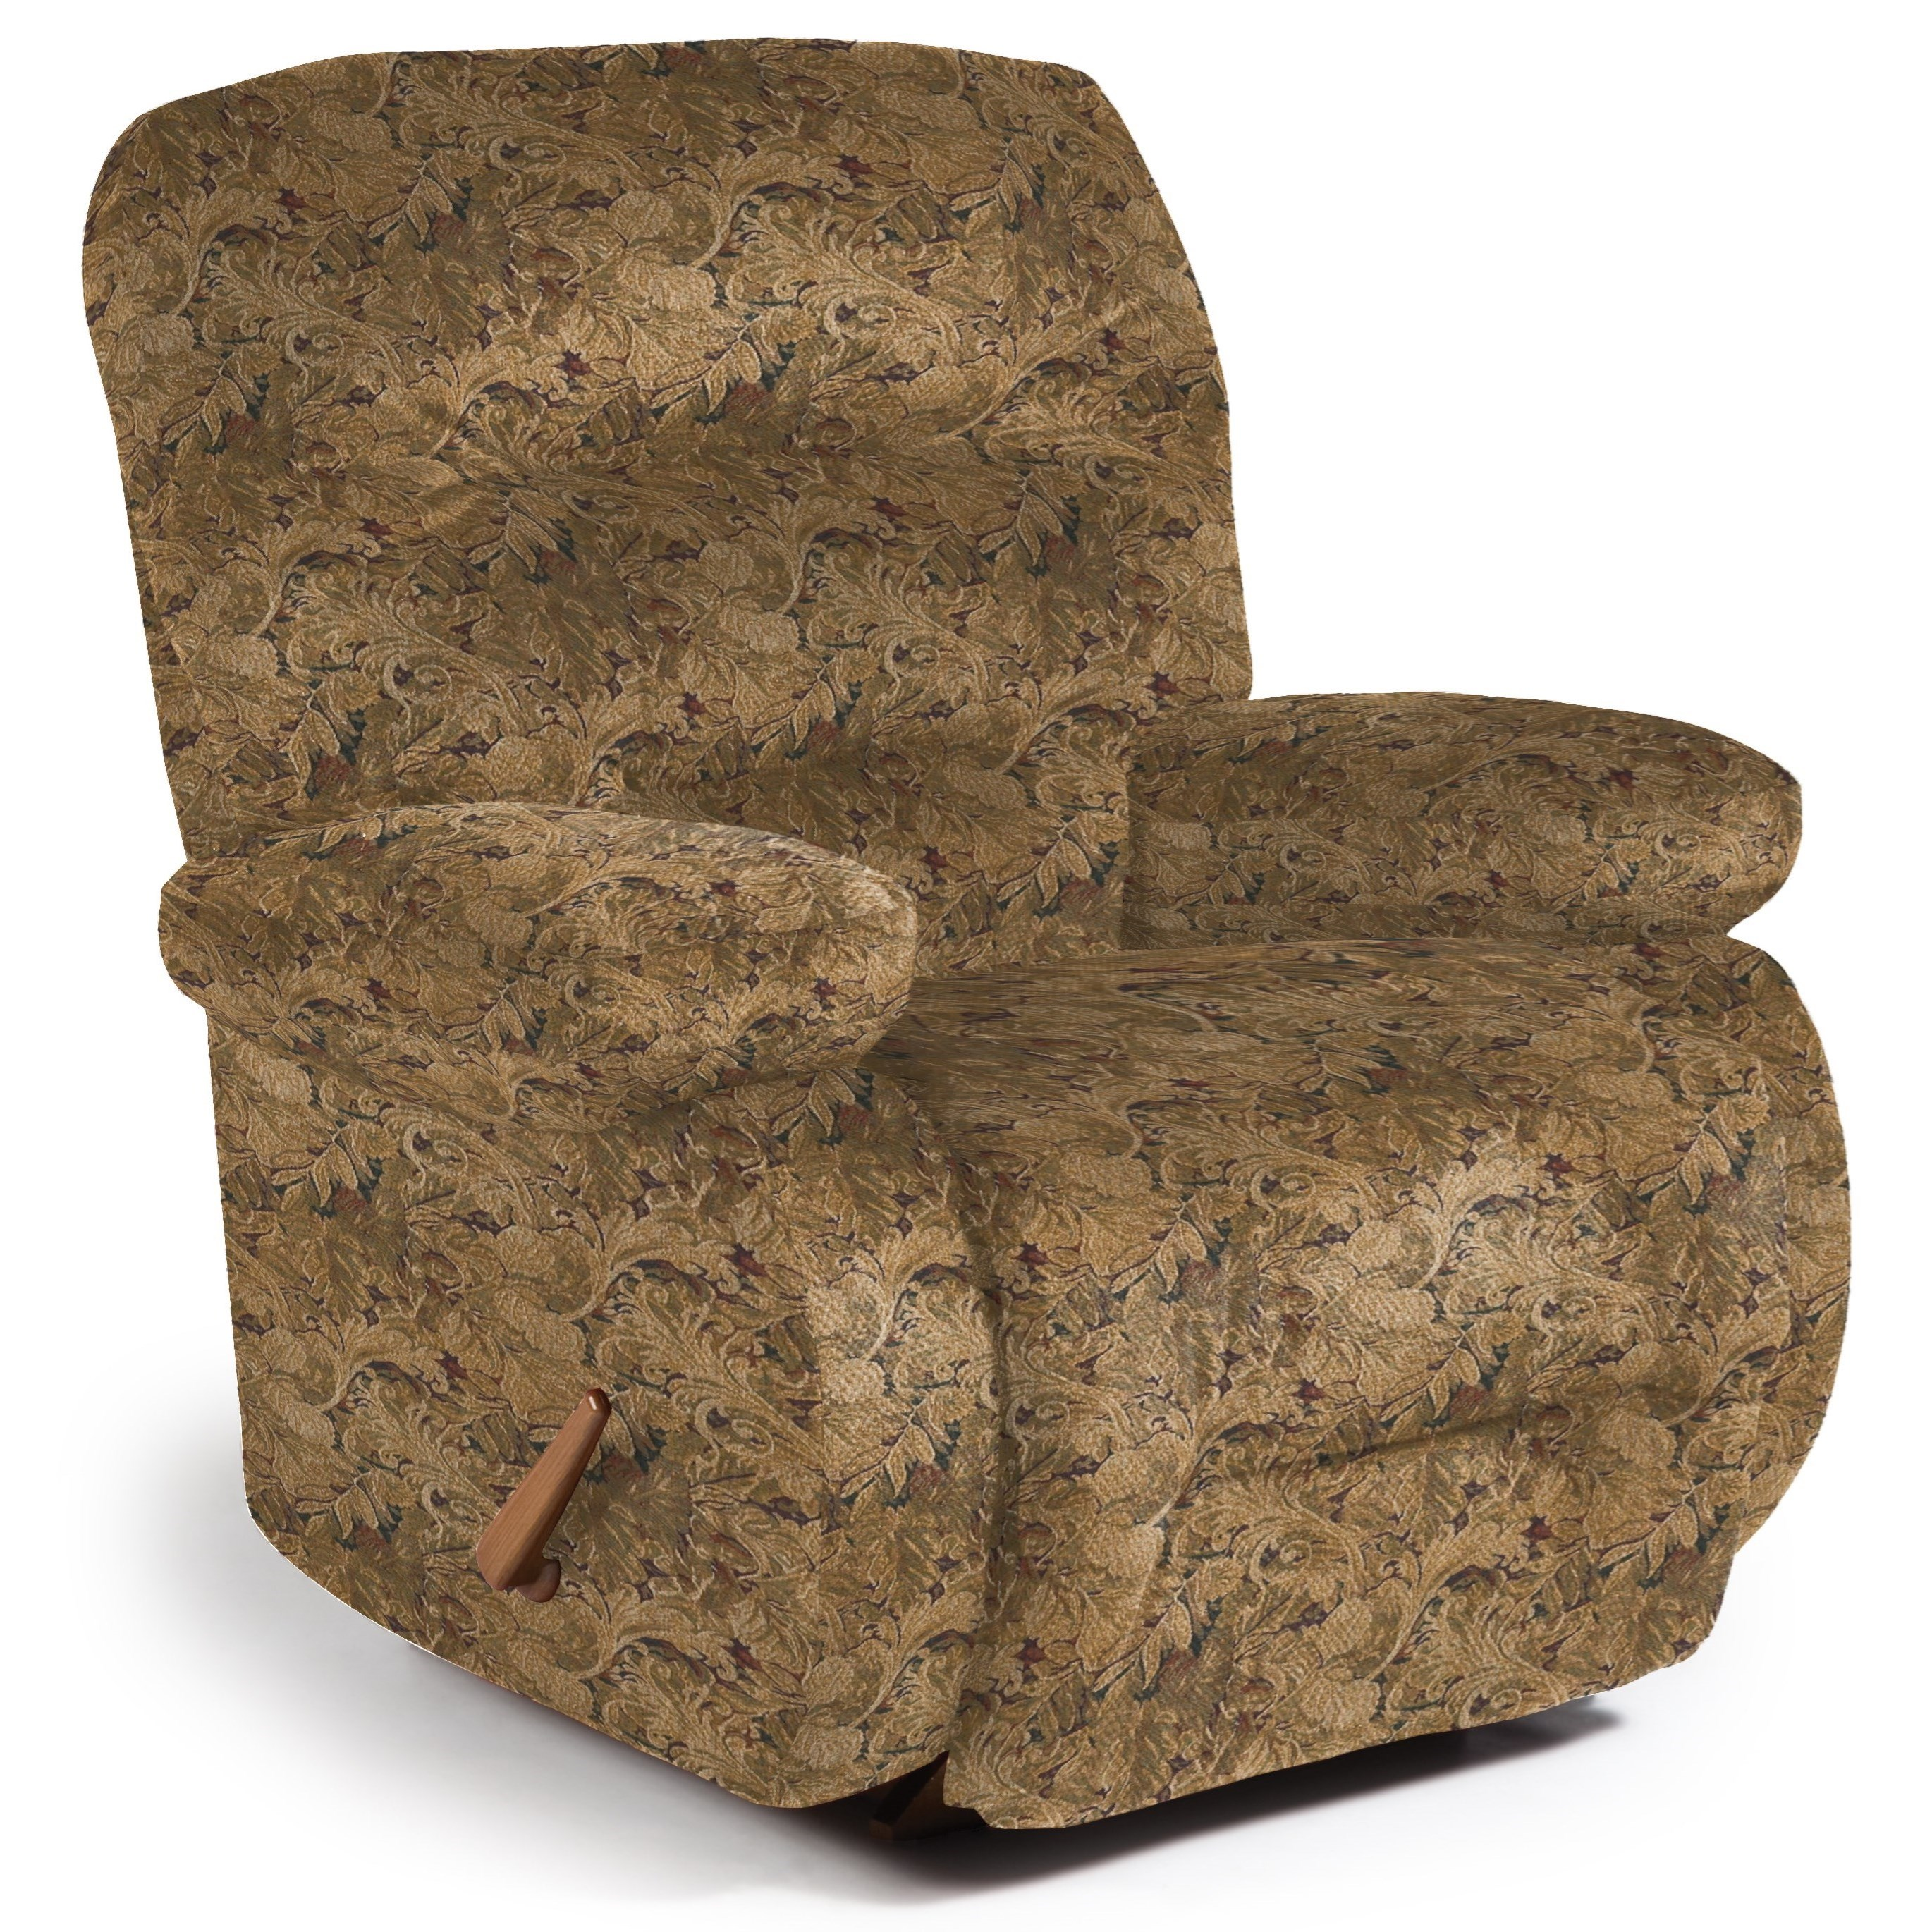 Best Home Furnishings Recliners - Medium Maddox Rocker Recliner - Item Number: -883606086-27505